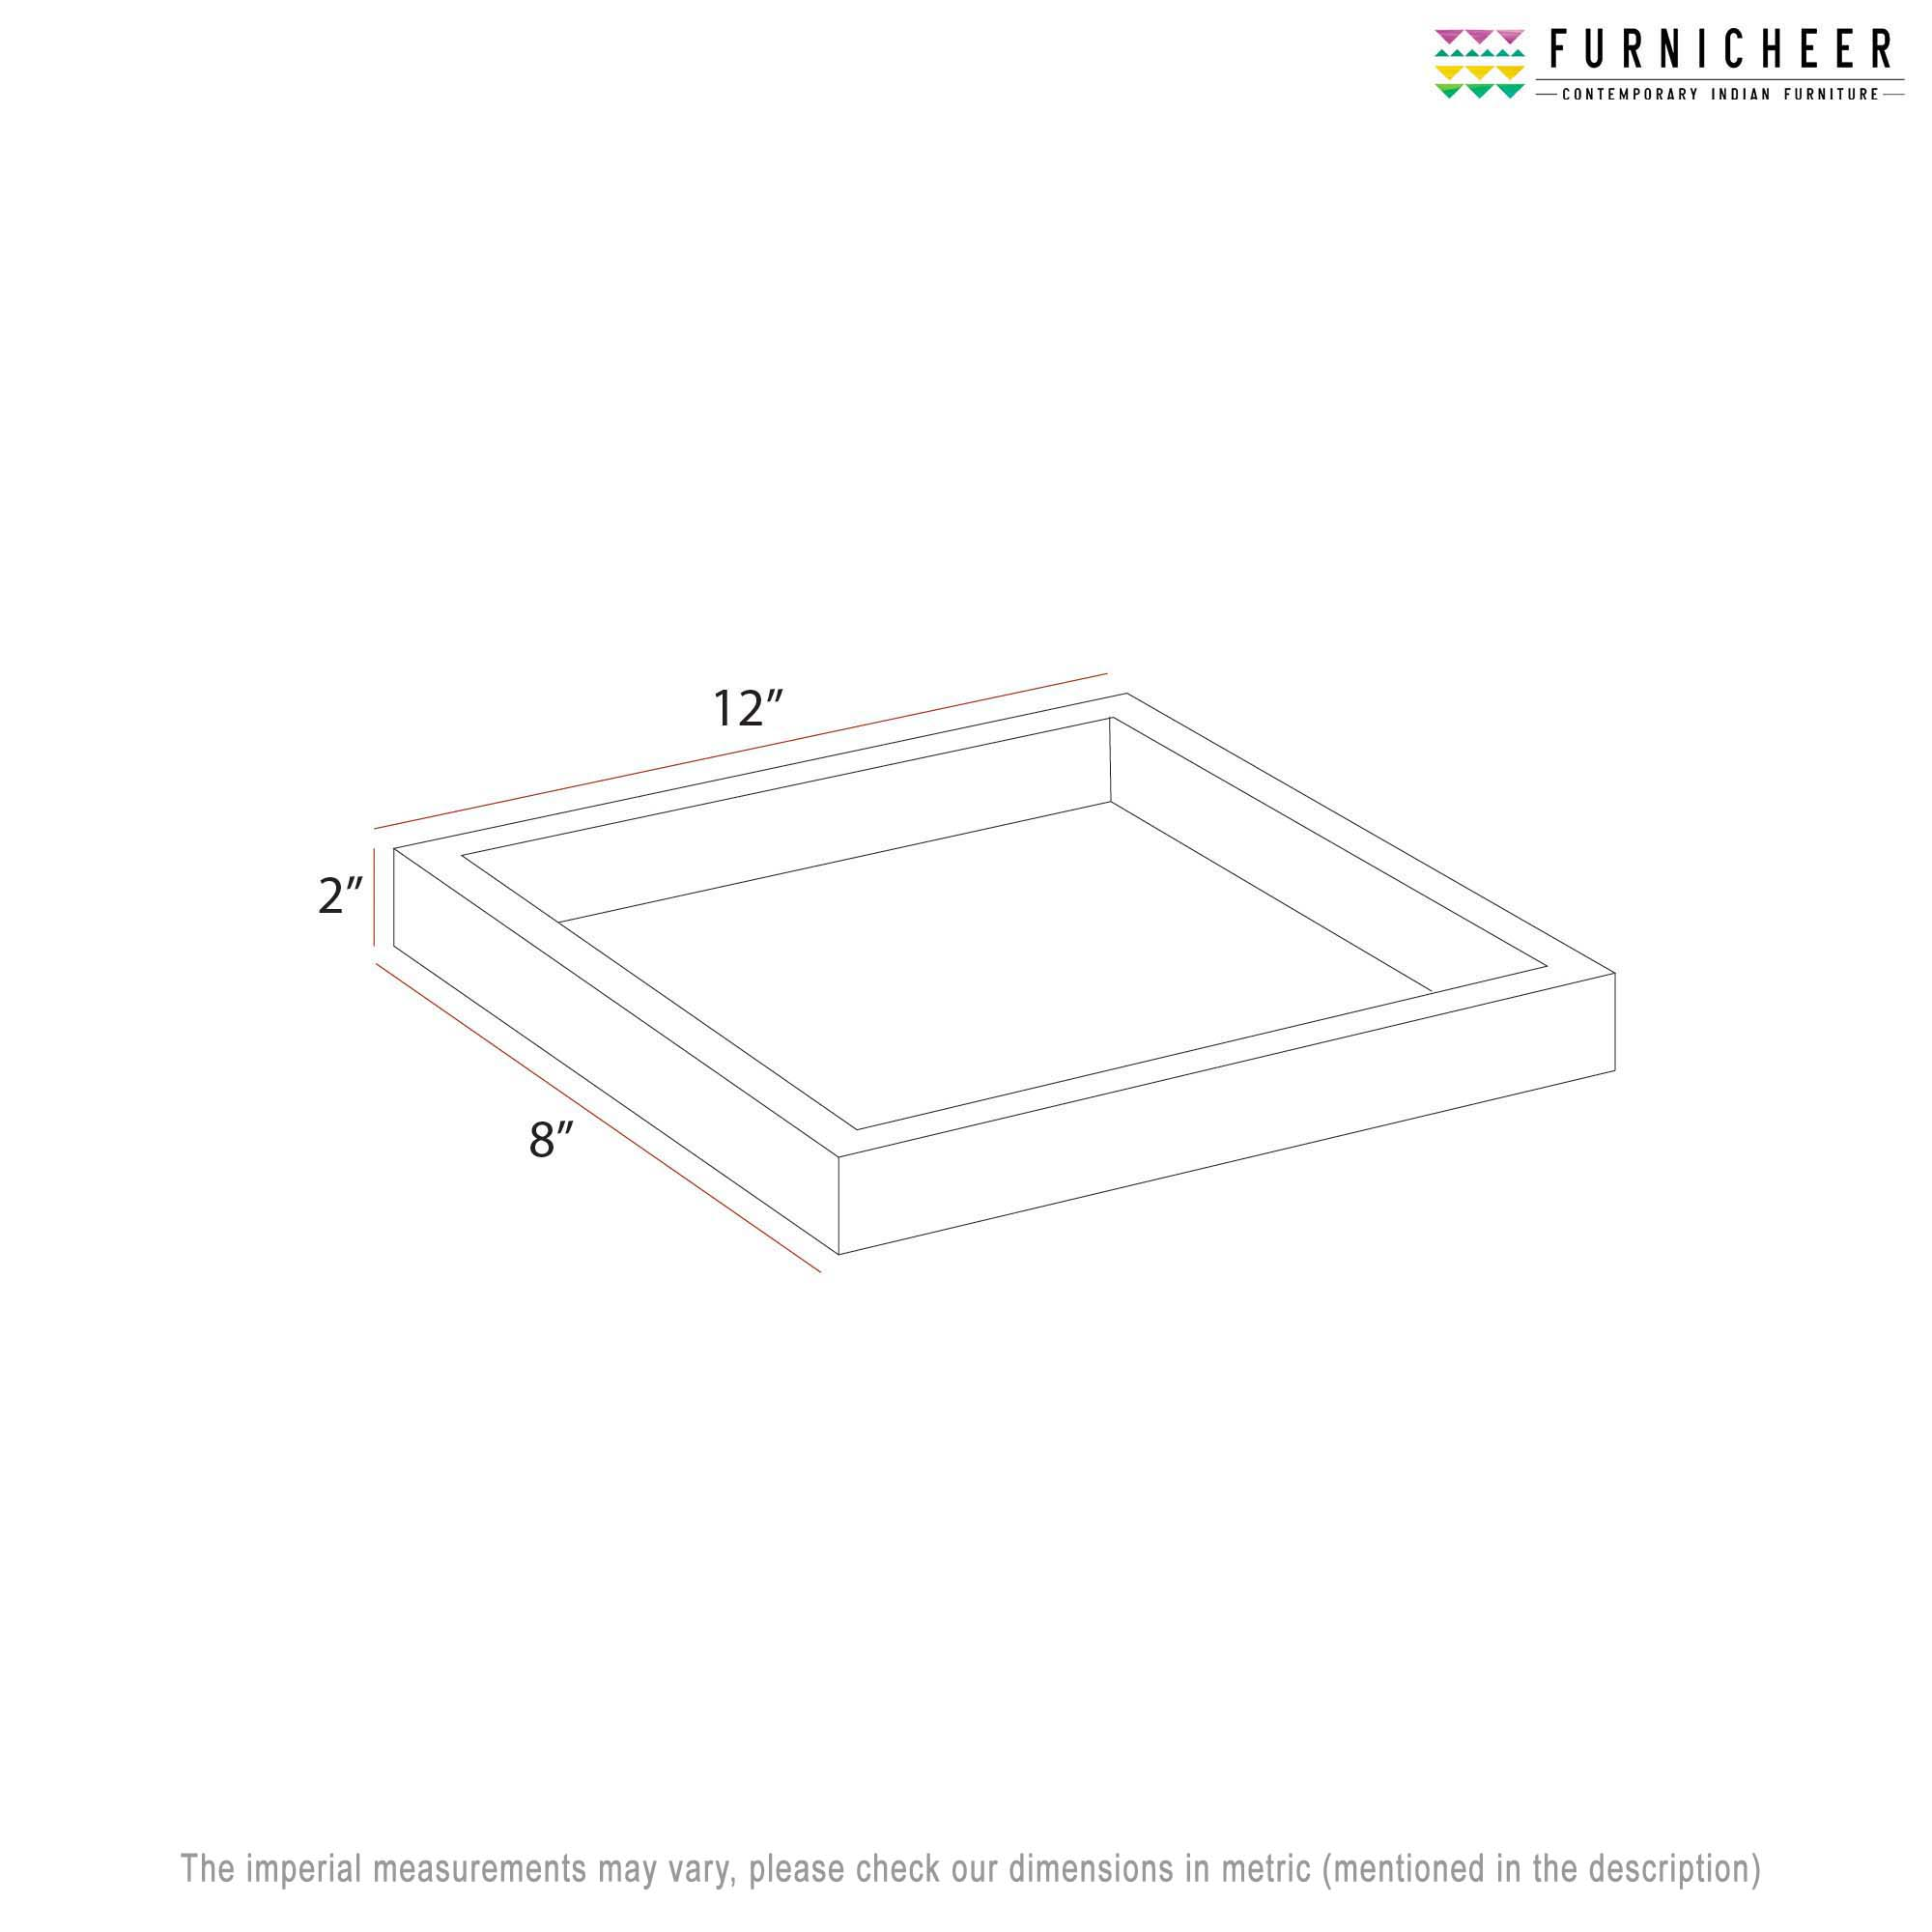 SERVING TRAY 12 X 8